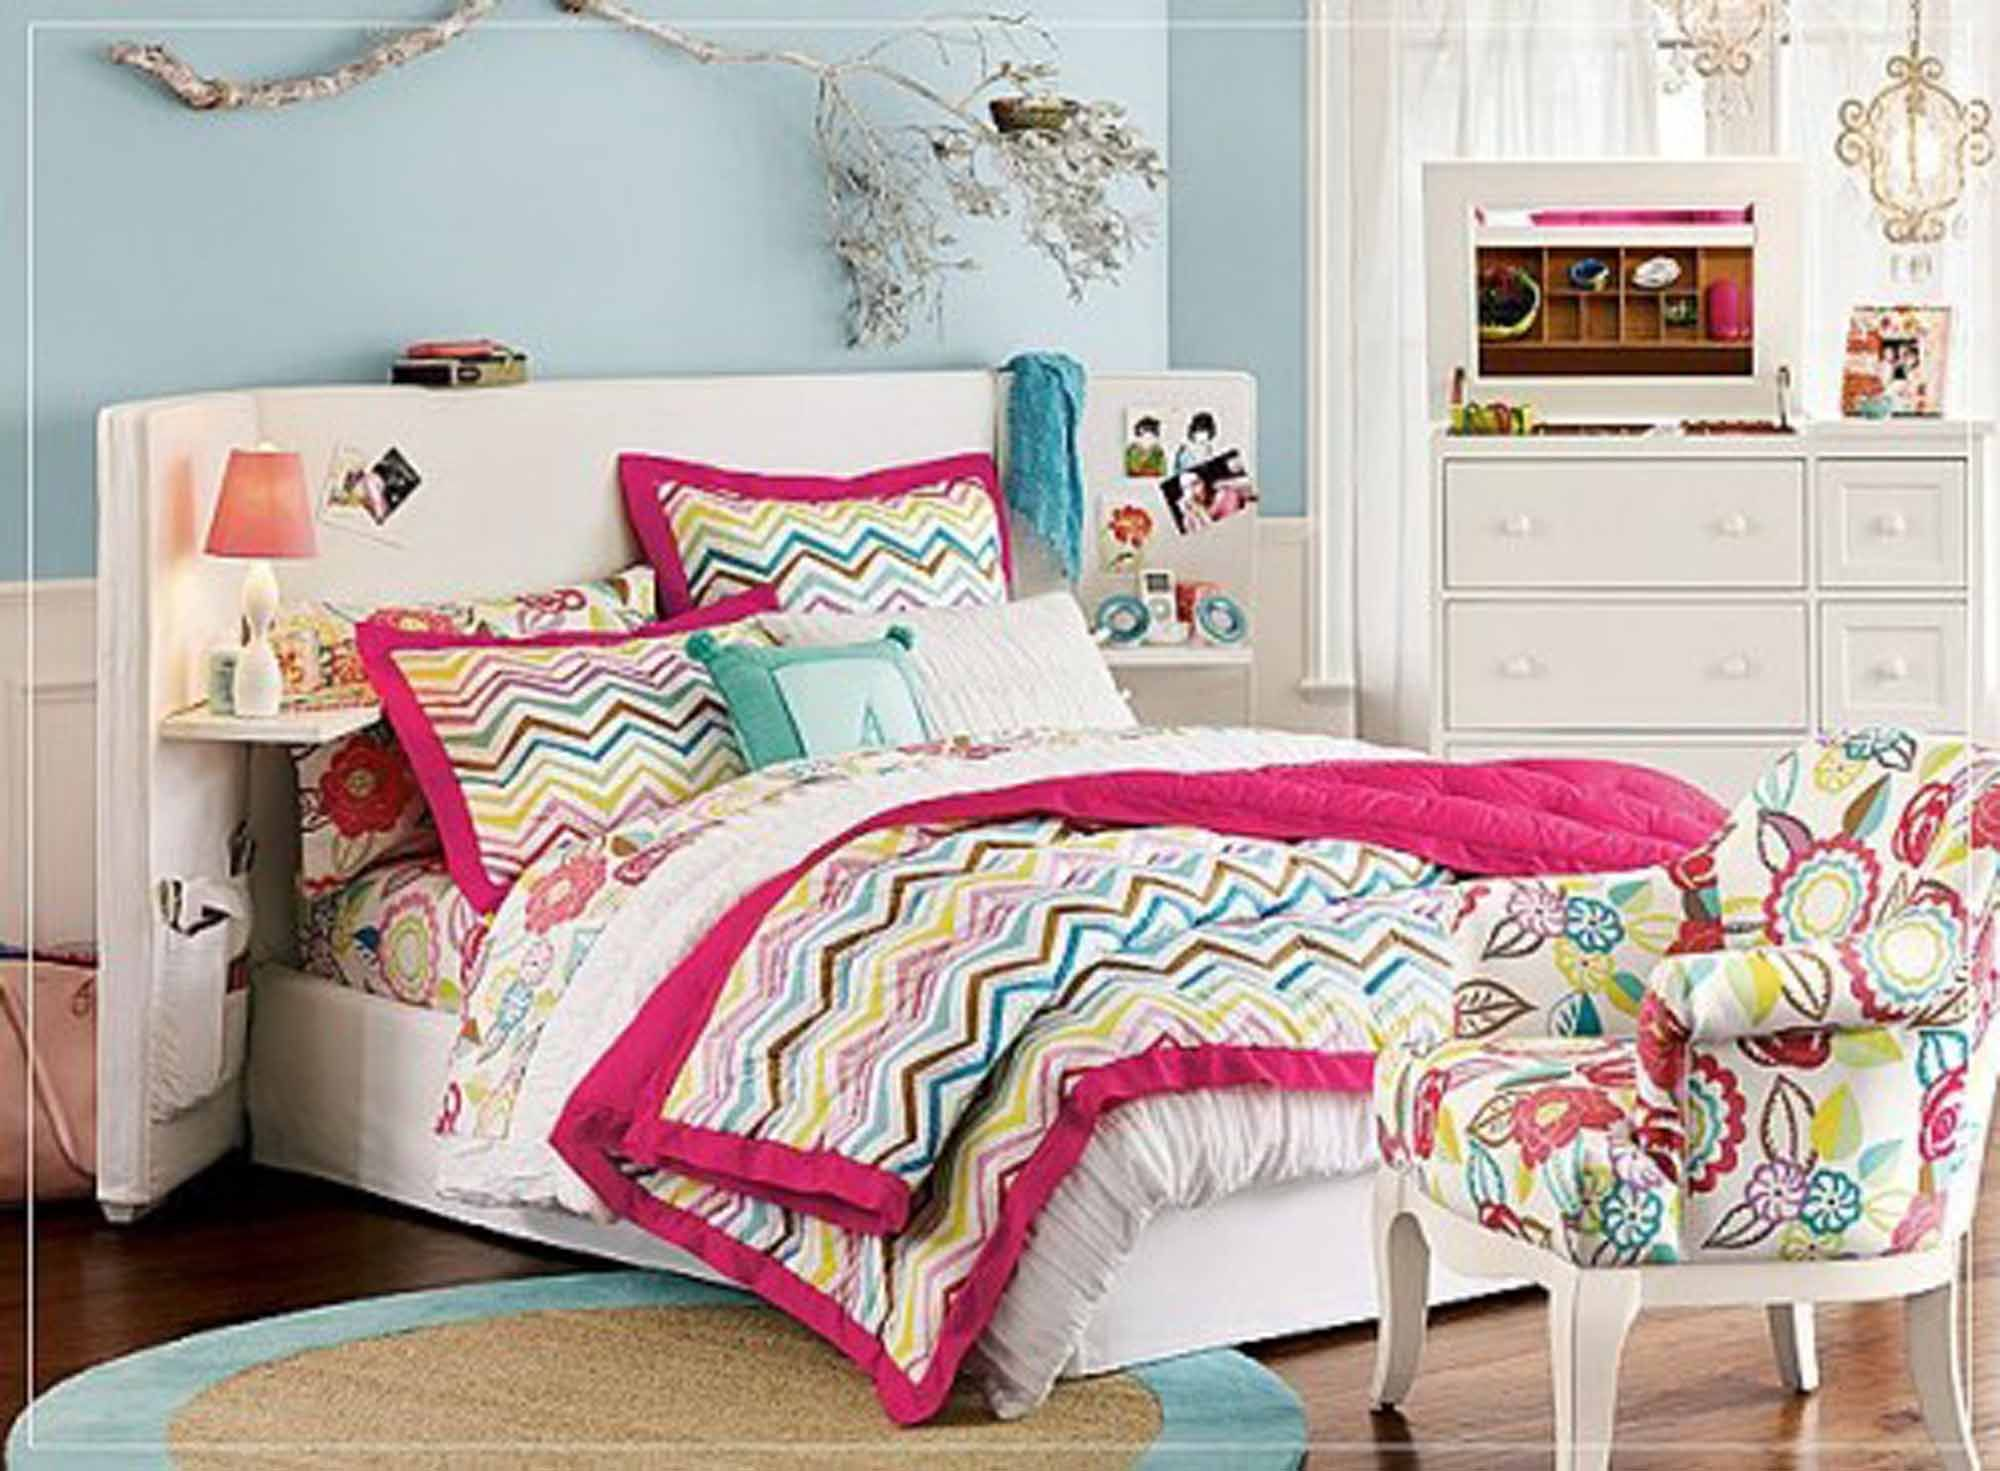 Homemade decoration ideas for girls bedrooms - Teen Tween Bedroom Ideas That Are Fun And Cool